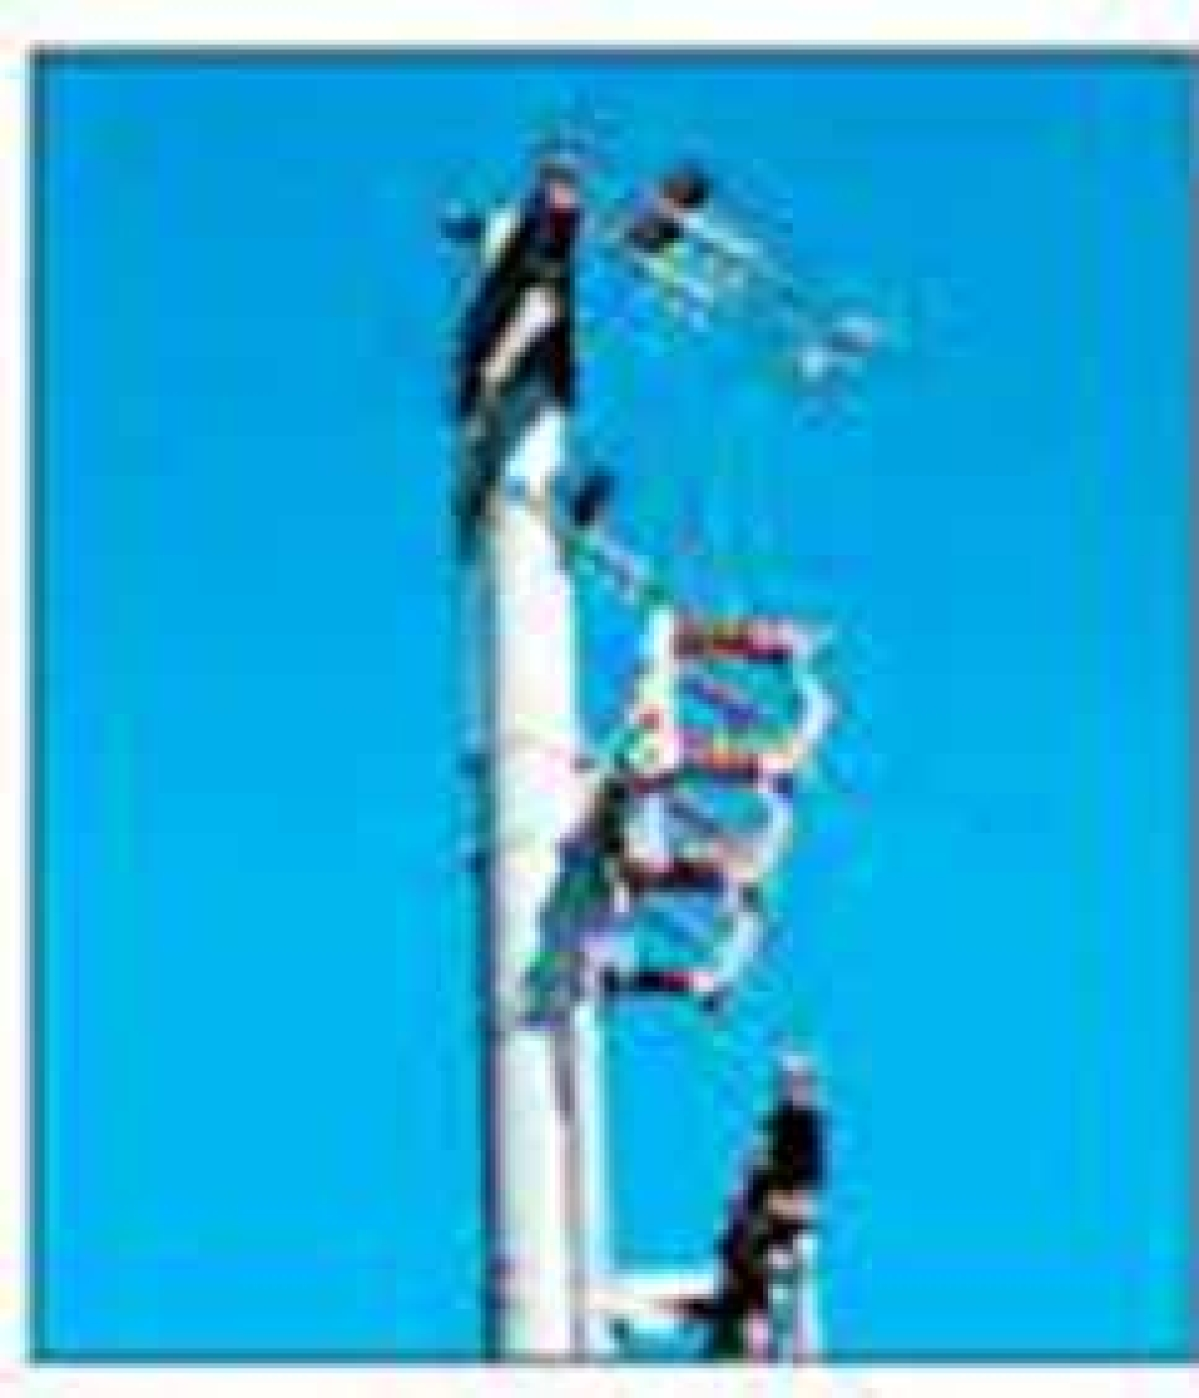 Discoms face criticism over tariff- revision